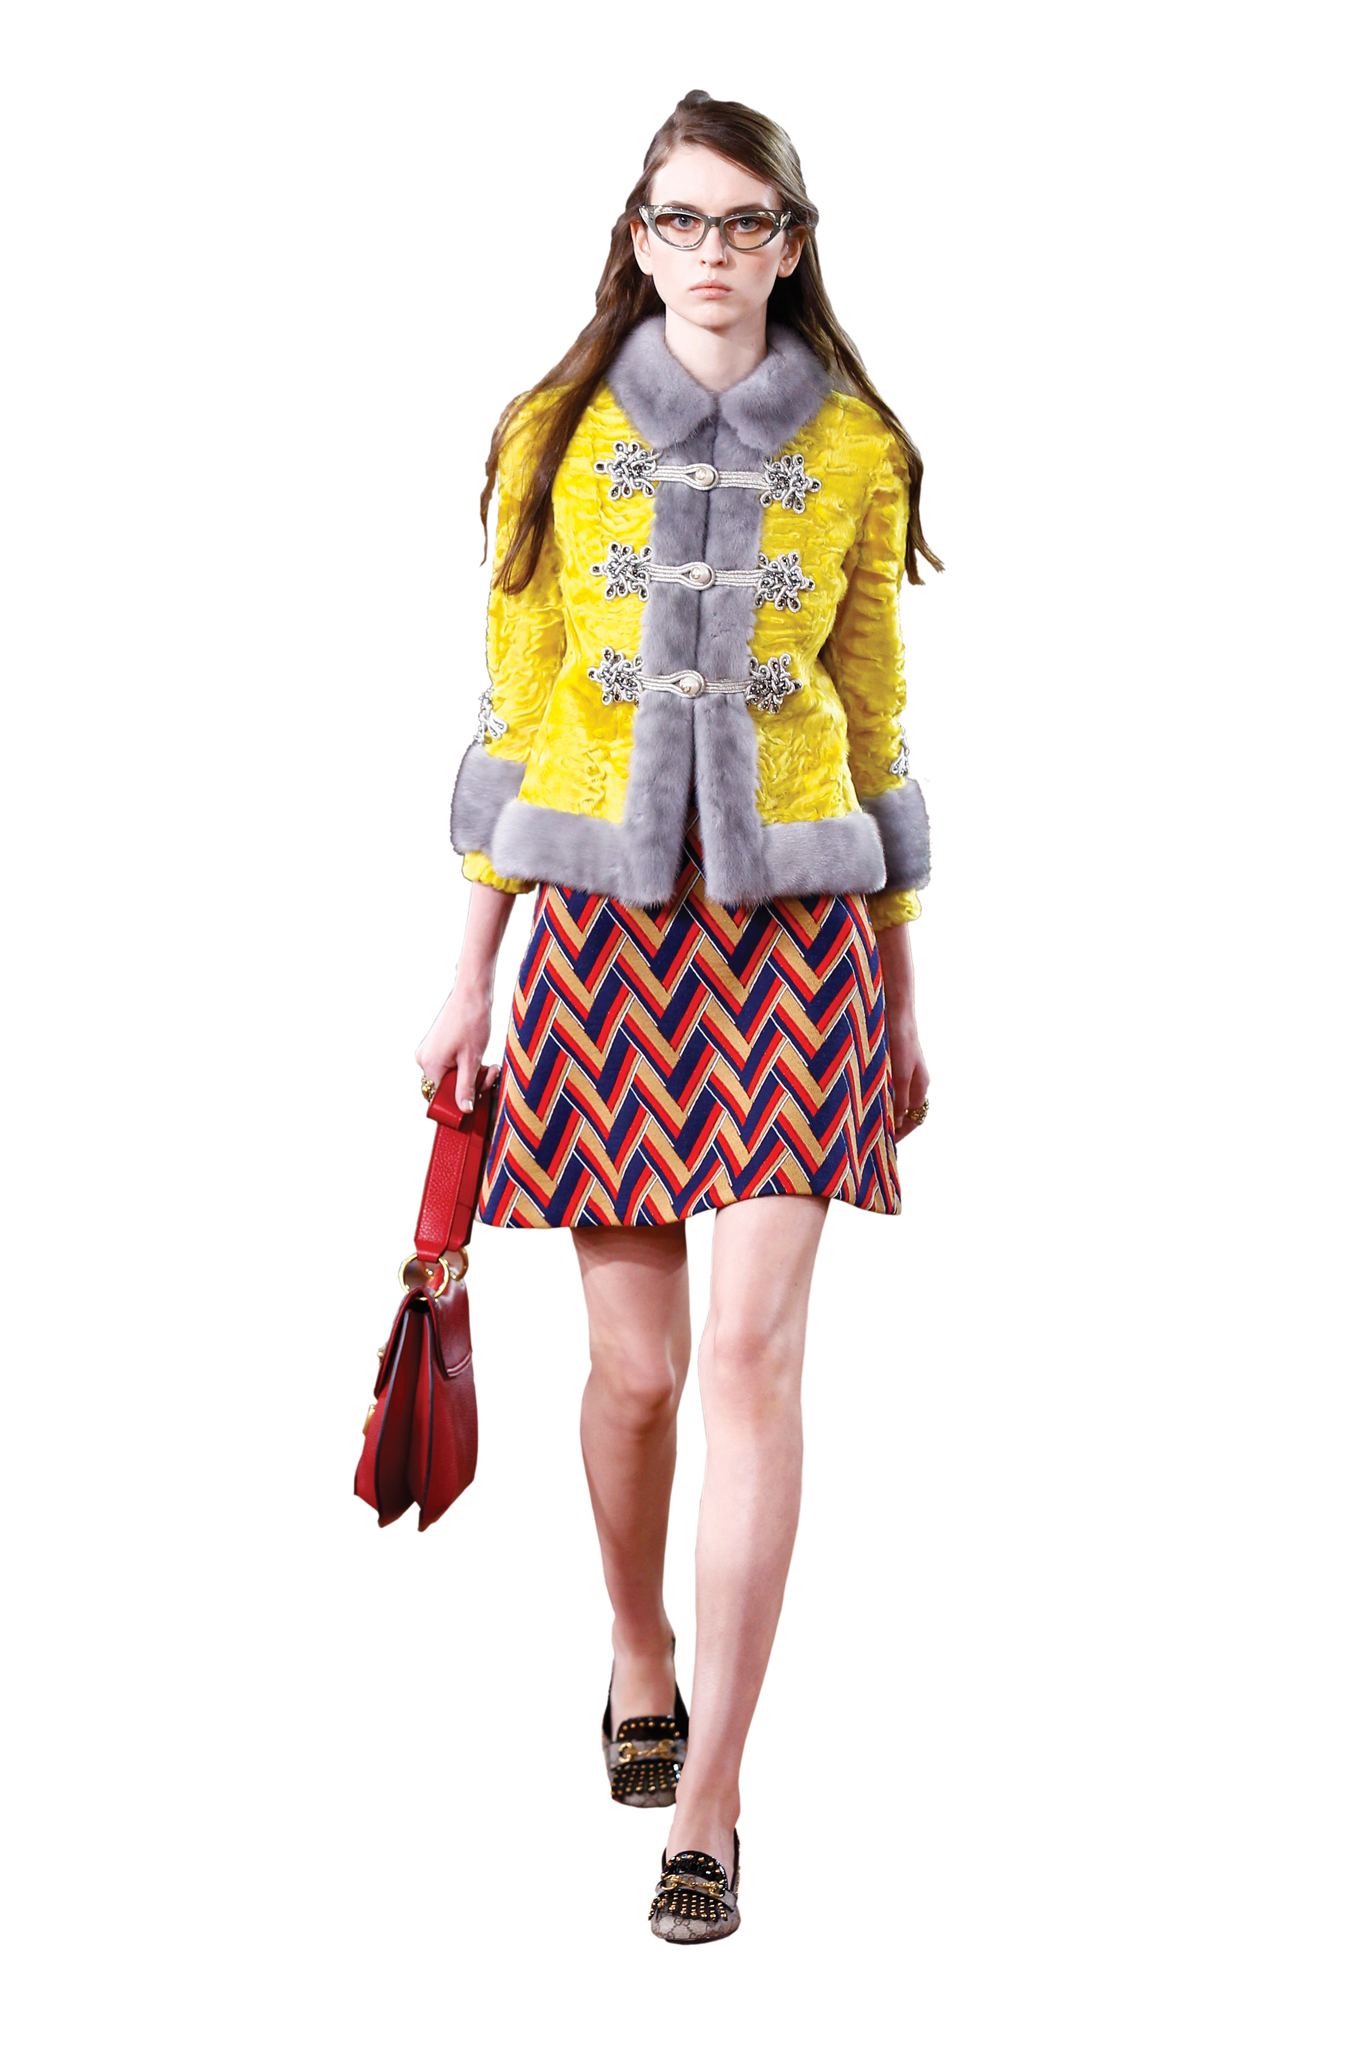 """""""Anything from Alessandro Michele's Gucci collections. In particular, the lamb and mink fur jacket ($26,500) paired with a Chevron jacquard A-line skirt ($990) and GG Marmont leather shoulder bag ($2,590) — a look fresh off the fall '15 runway."""" — Tiziana Cardini, Fashion Director of La Rinascente"""